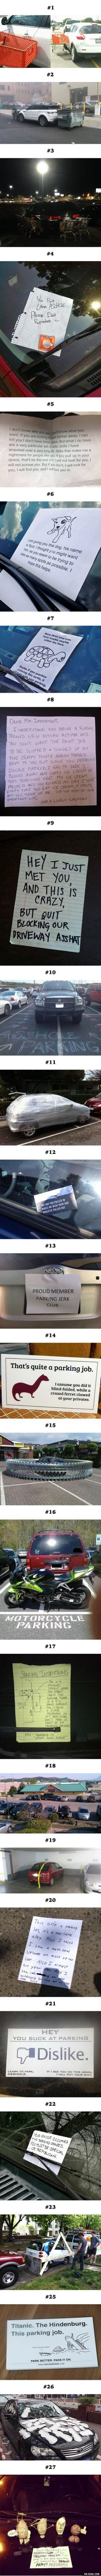 27 Asshat Parkers Get Exactly What They Deserved